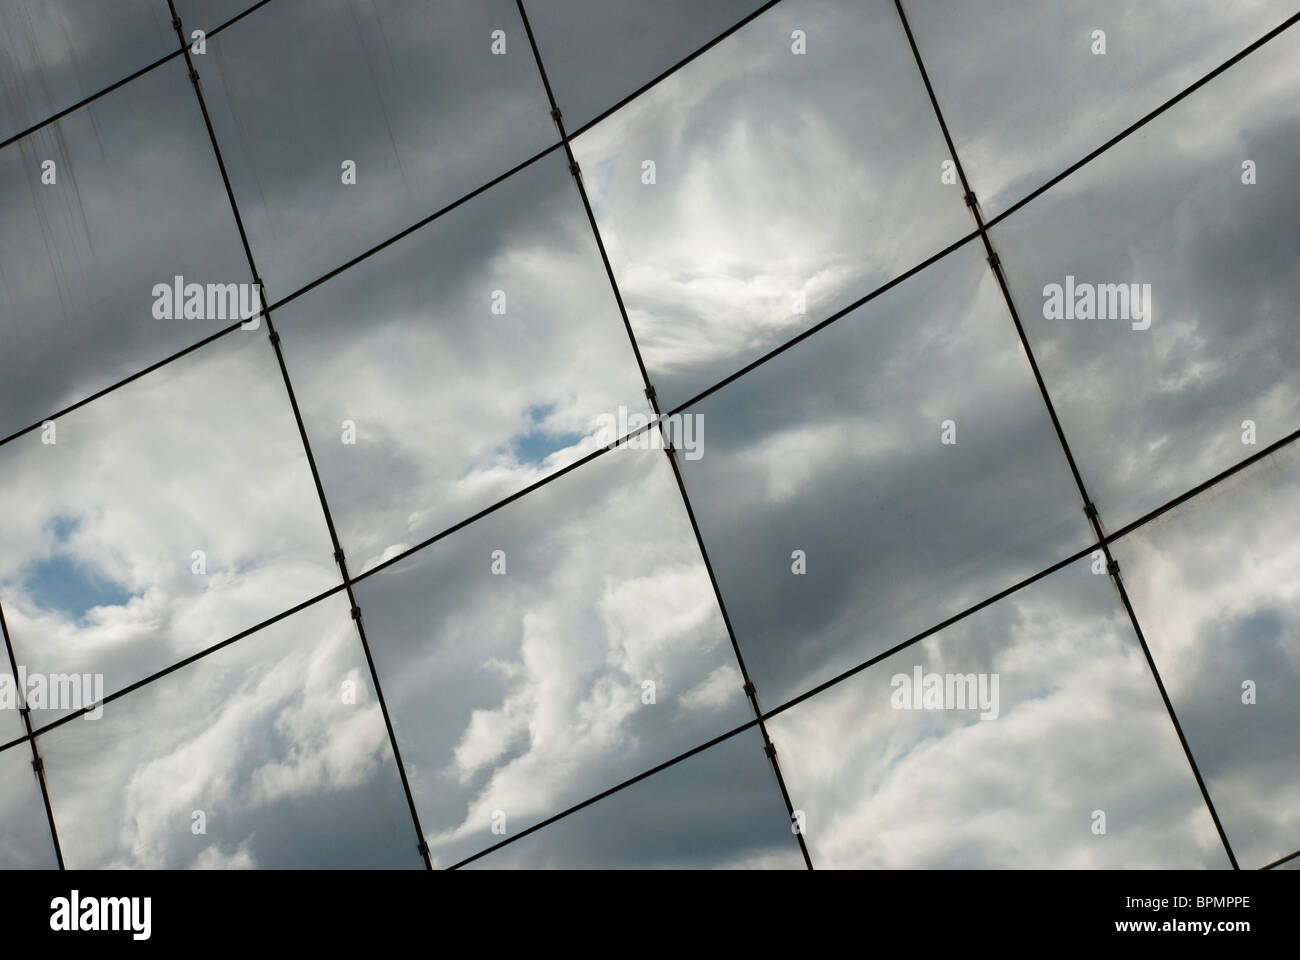 Clouds reflected on the glass wall 2 - Stock Image